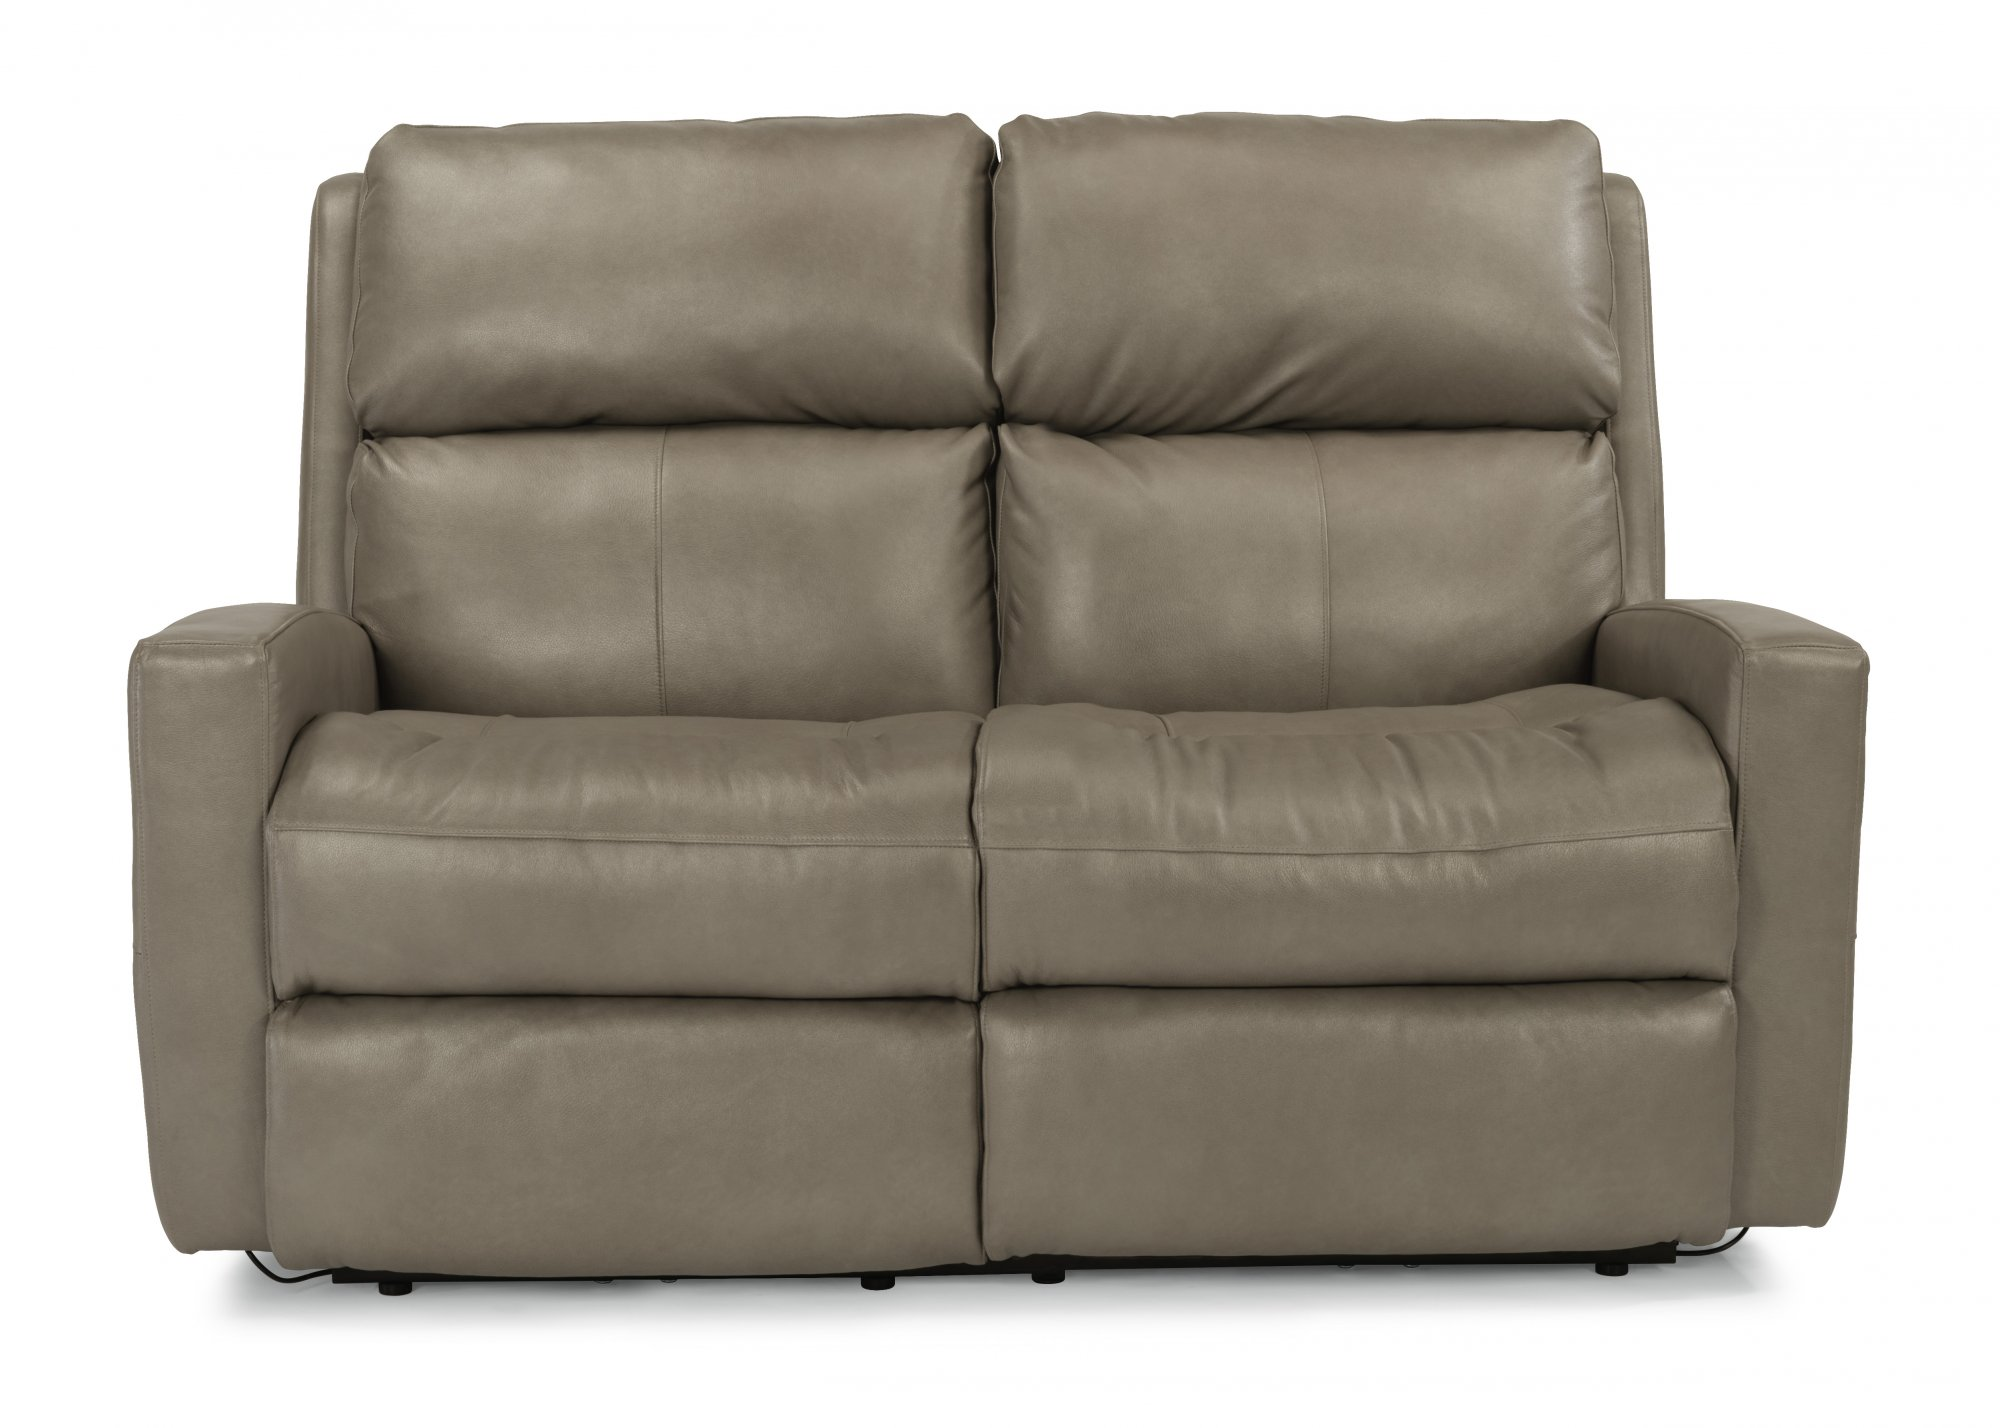 Pleasant Flexsteel 3900 60M Catalina Leather Power Reclining Caraccident5 Cool Chair Designs And Ideas Caraccident5Info